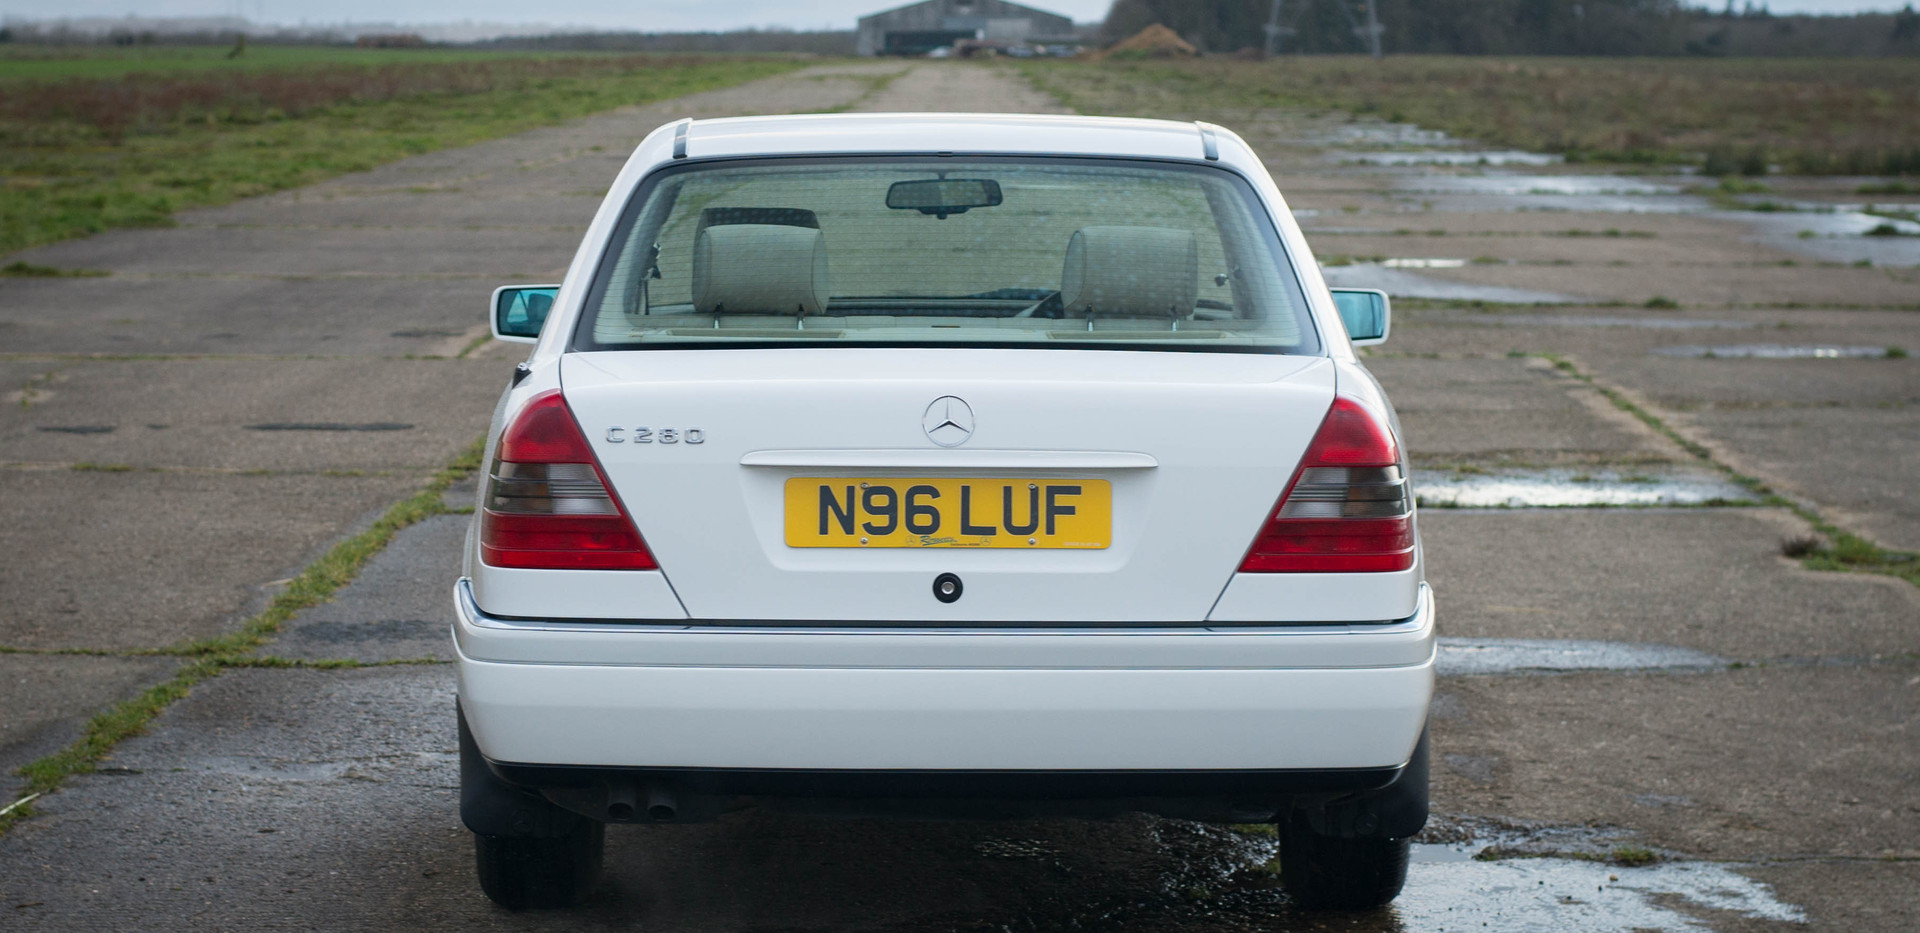 Mercedes C280 For Sale UK London  (26 of